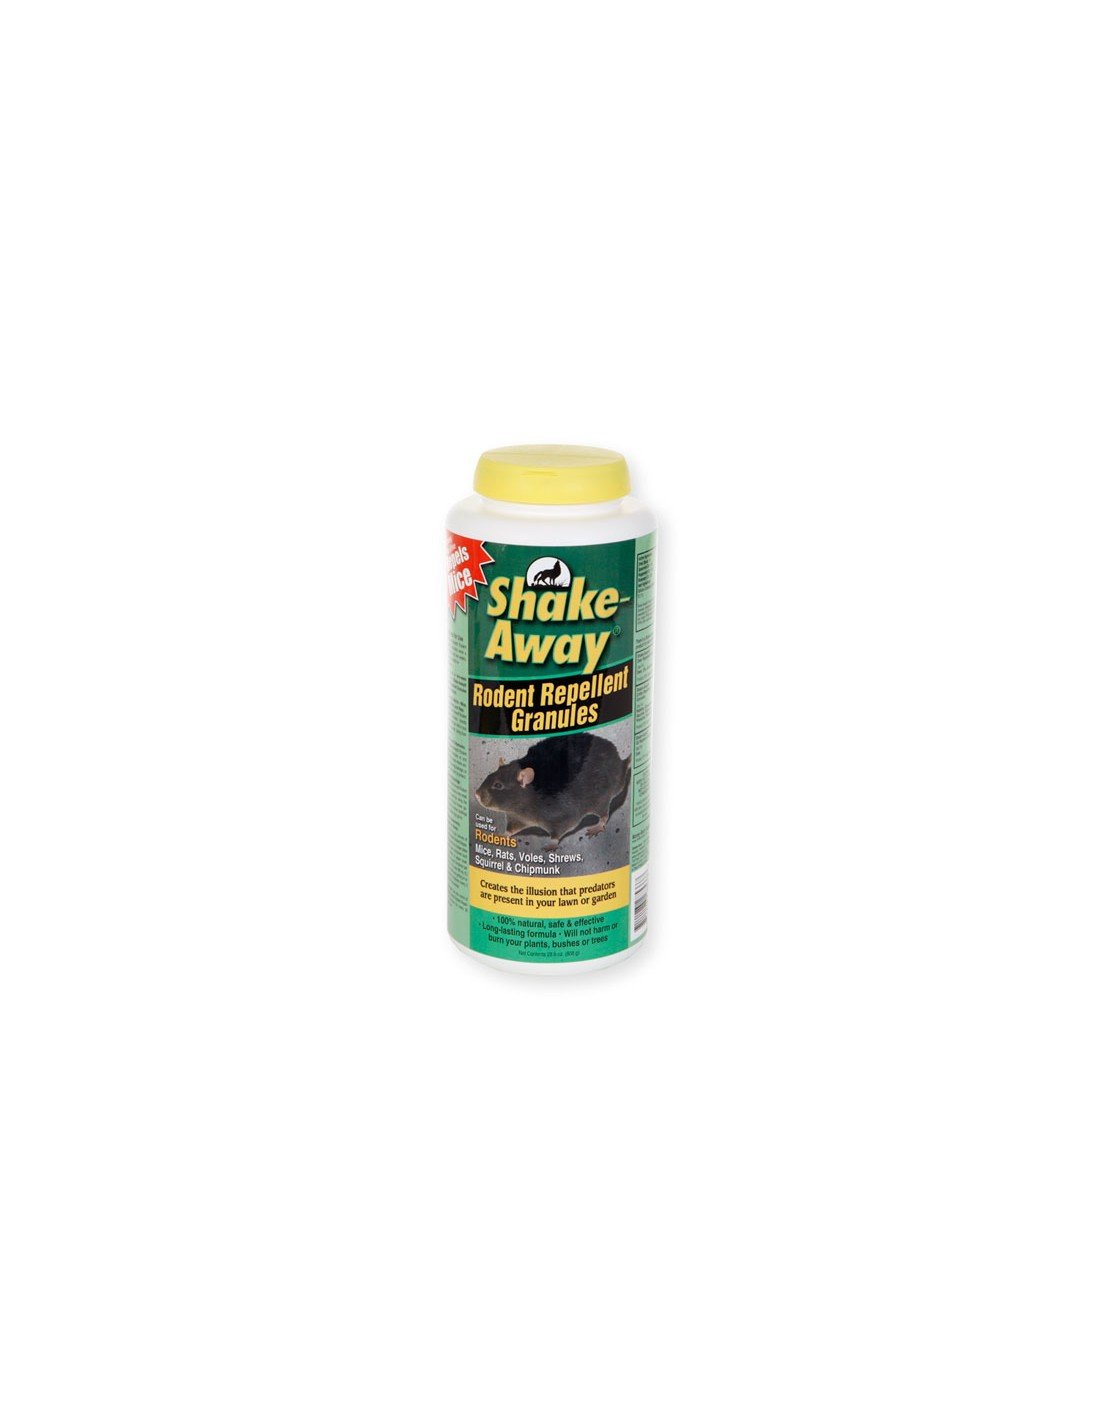 what may we use to repel voles/moles which have already tunneled extensively in the back yard????  Do the spikes wr